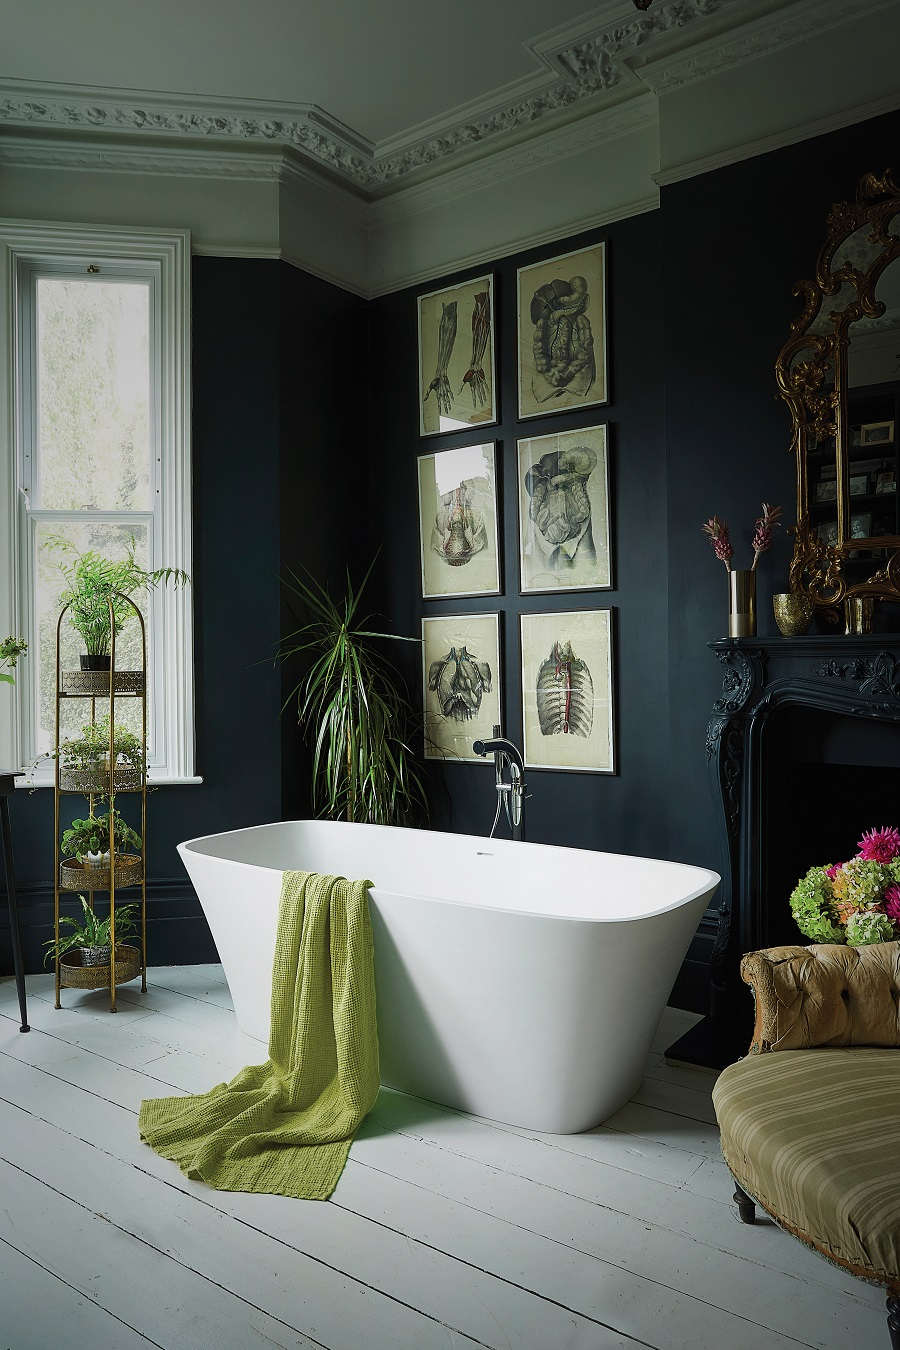 A Bathroom That Successfully Combines Modernity With Period Features